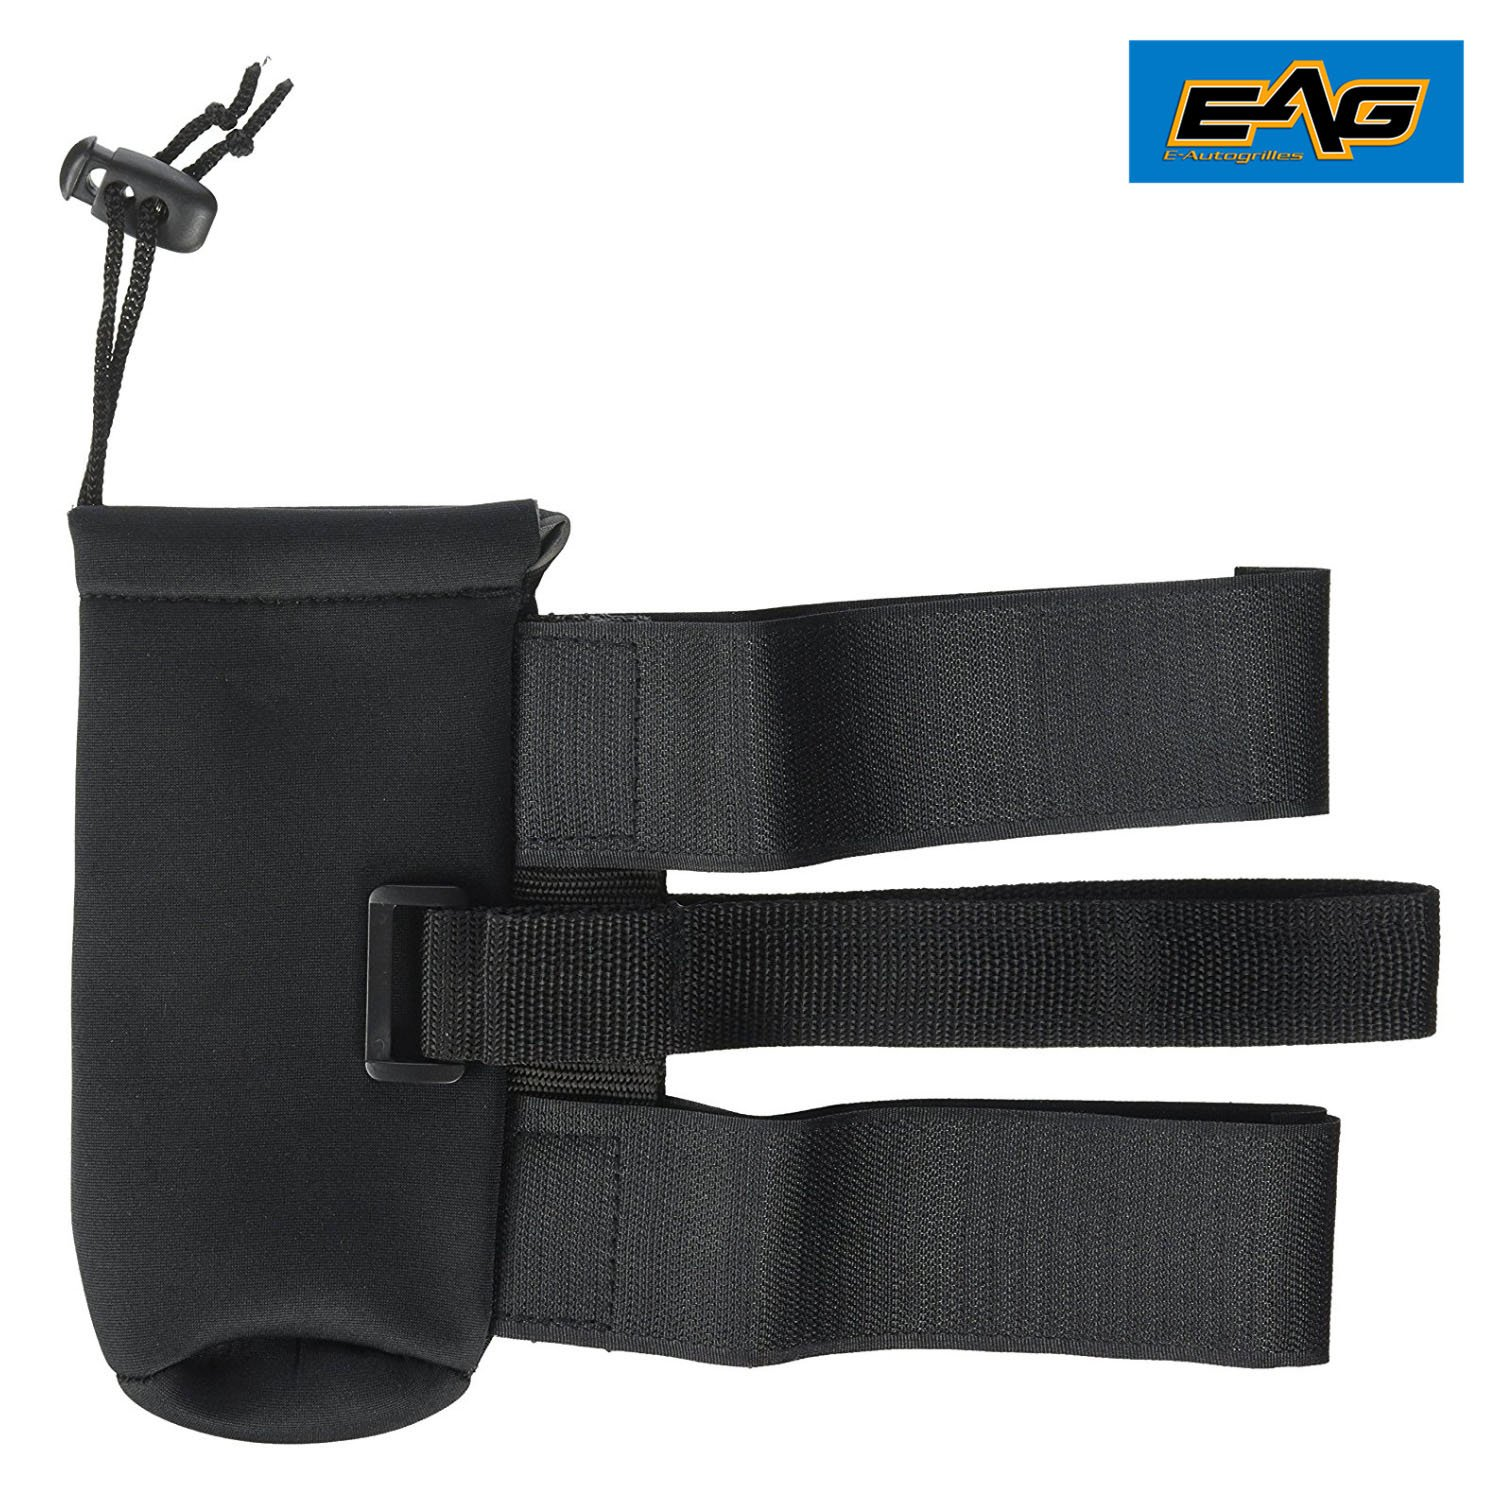 EAG E-Autogrilles 51-9530 Black Roll Bar Fire Extinguisher Holder (87-16 Jeep Wrangler YJ/TJ/JK 1 lb)